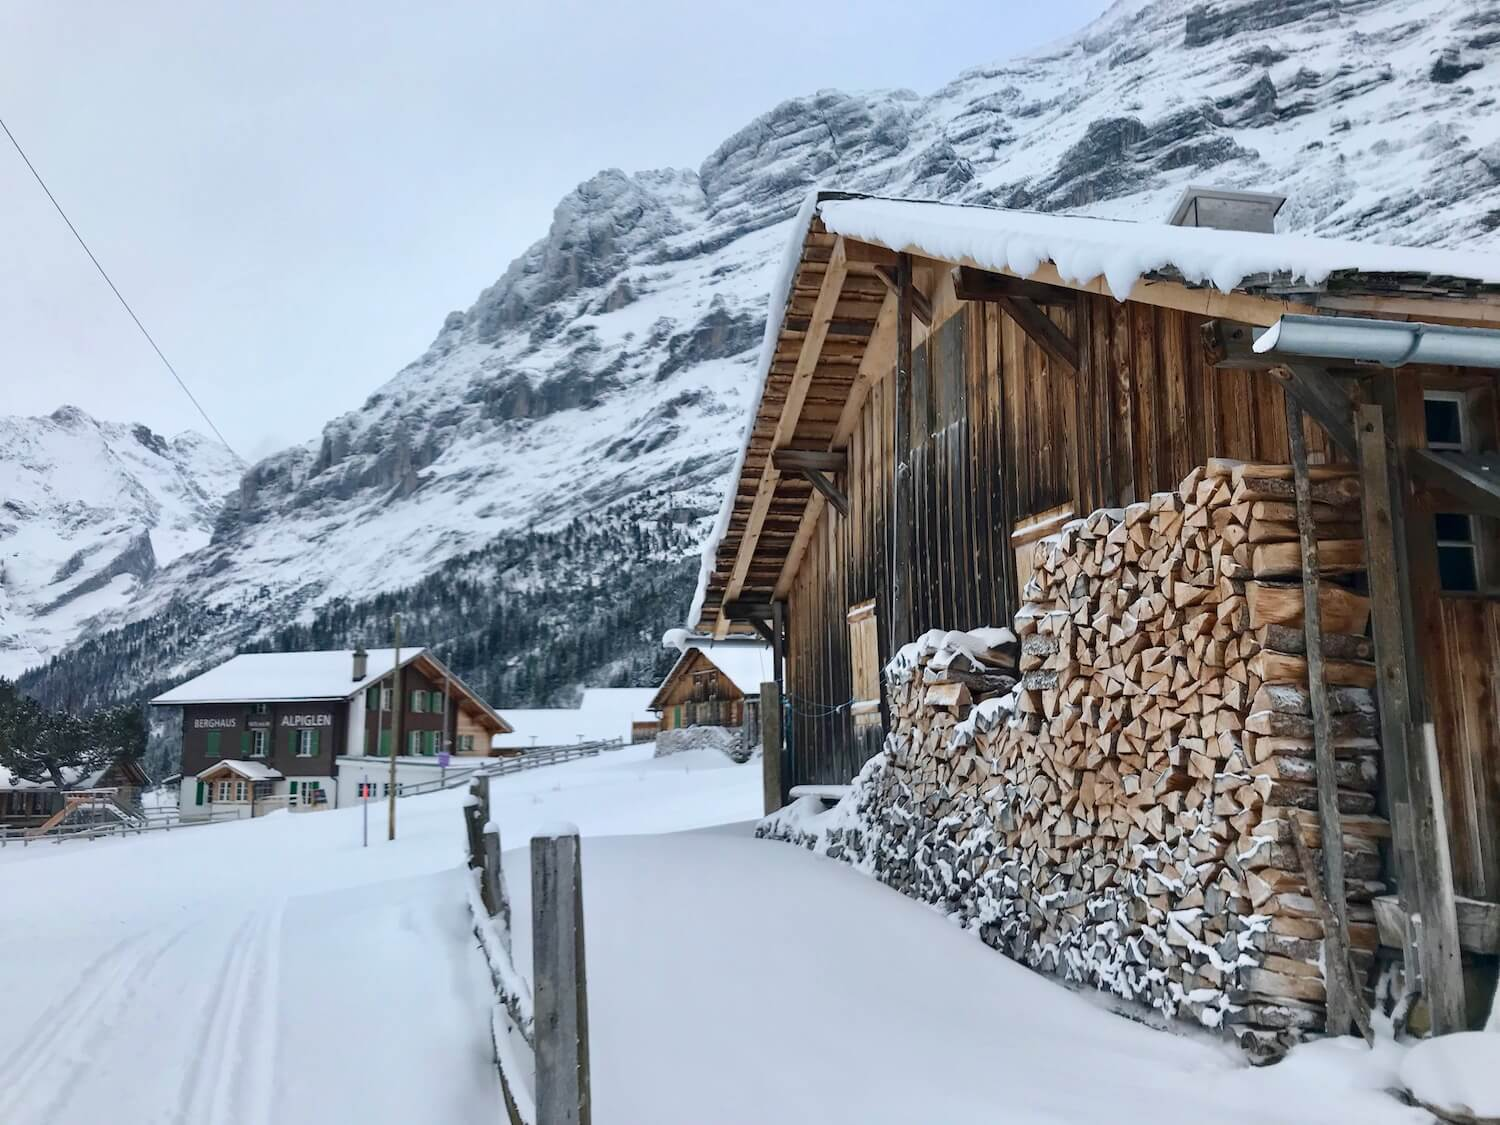 Walking up upon a Swiss barn with stacked wood pile and a mountainside restaurant inn in the far distance. All under the rocky peak of Eiger.